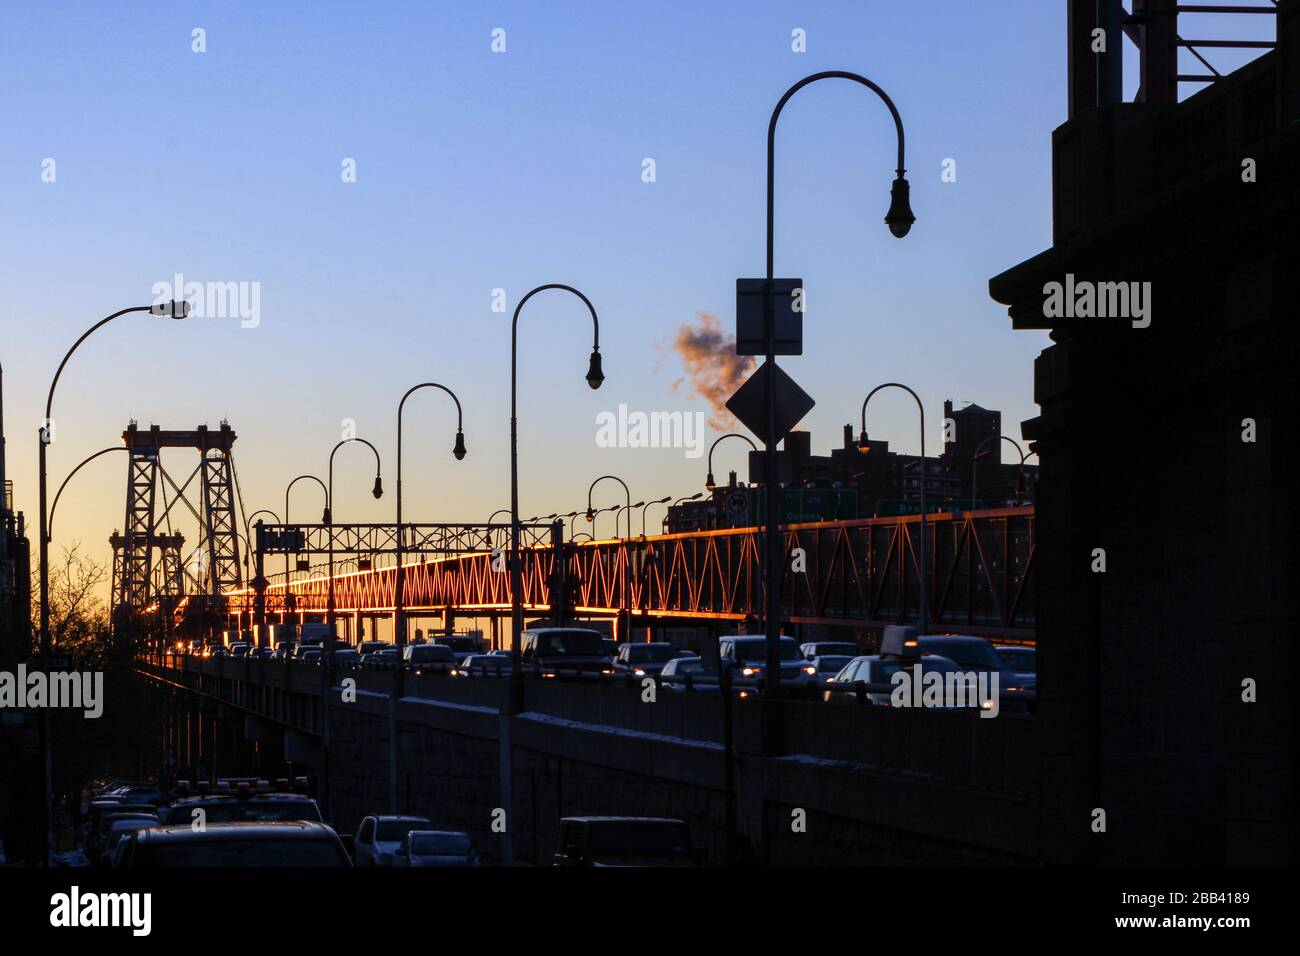 Cars on Lower East Side end of Williamsburg Bridge in the early morning rising sun in New York City, United States of America Stock Photo